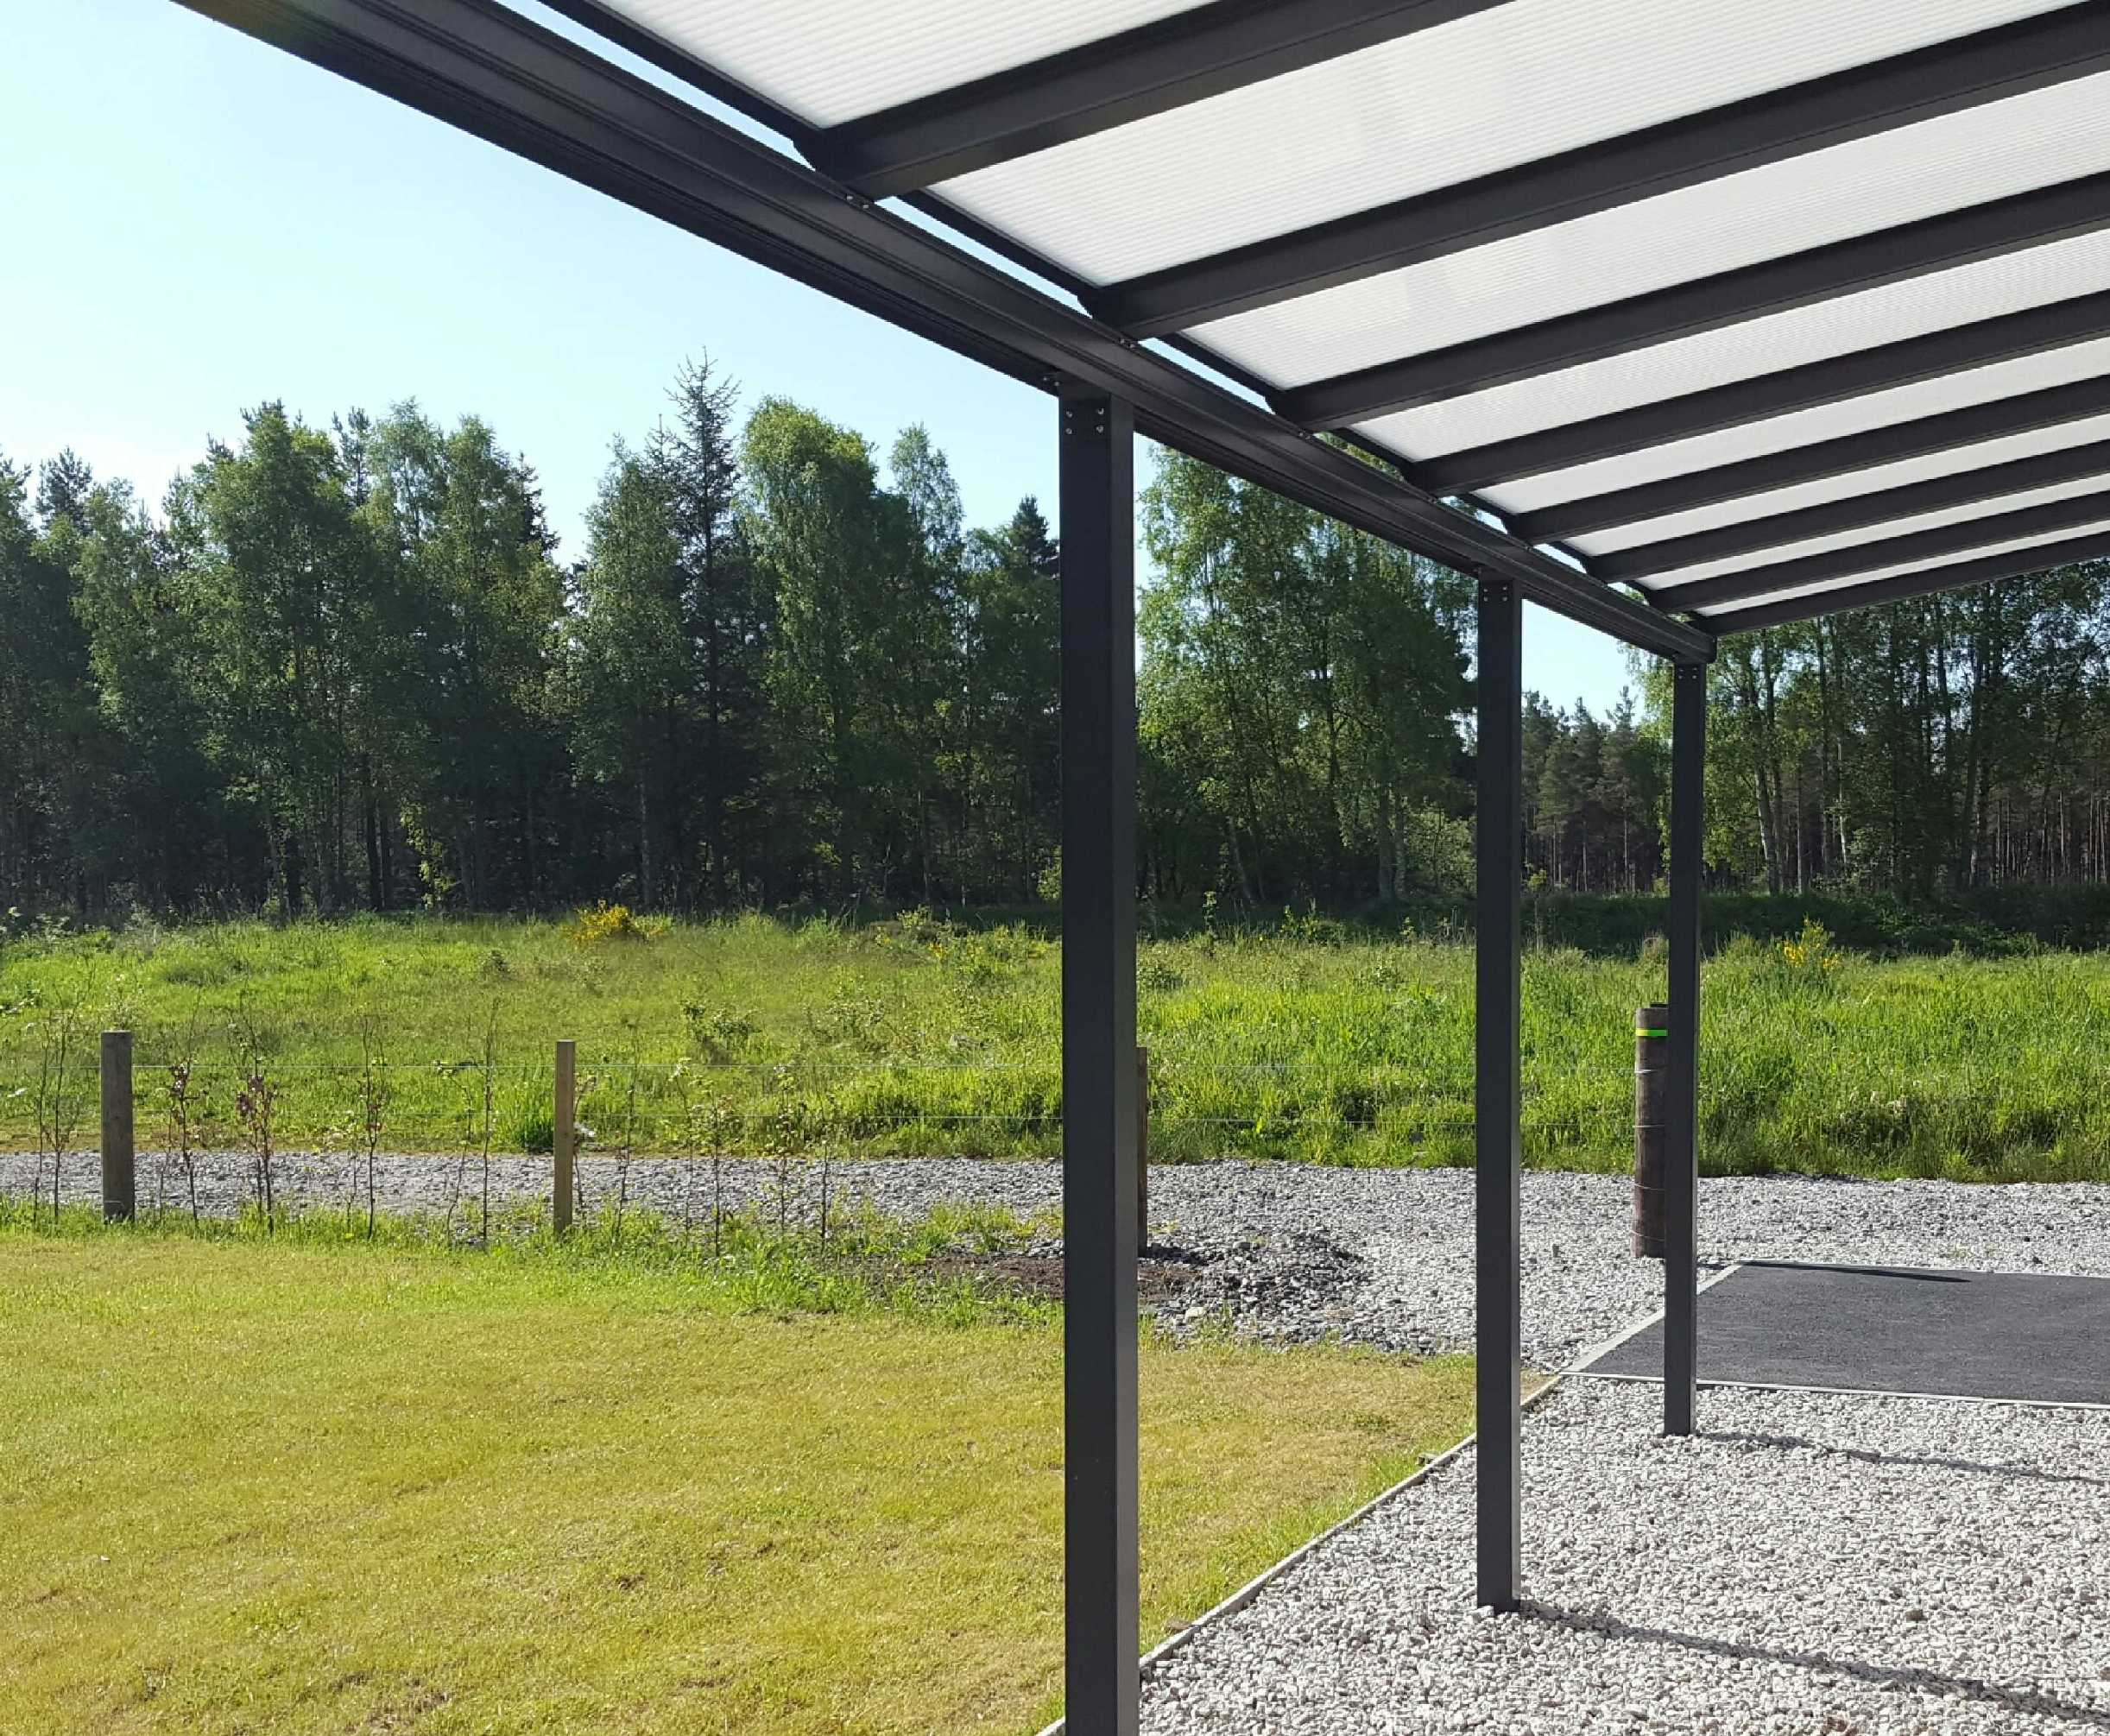 Omega Smart Lean-To Canopy, Anthracite Grey, 6mm Glass Clear Plate Polycarbonate Glazing - 7.7m (W) x 2.5m (P), (4) Supporting Posts